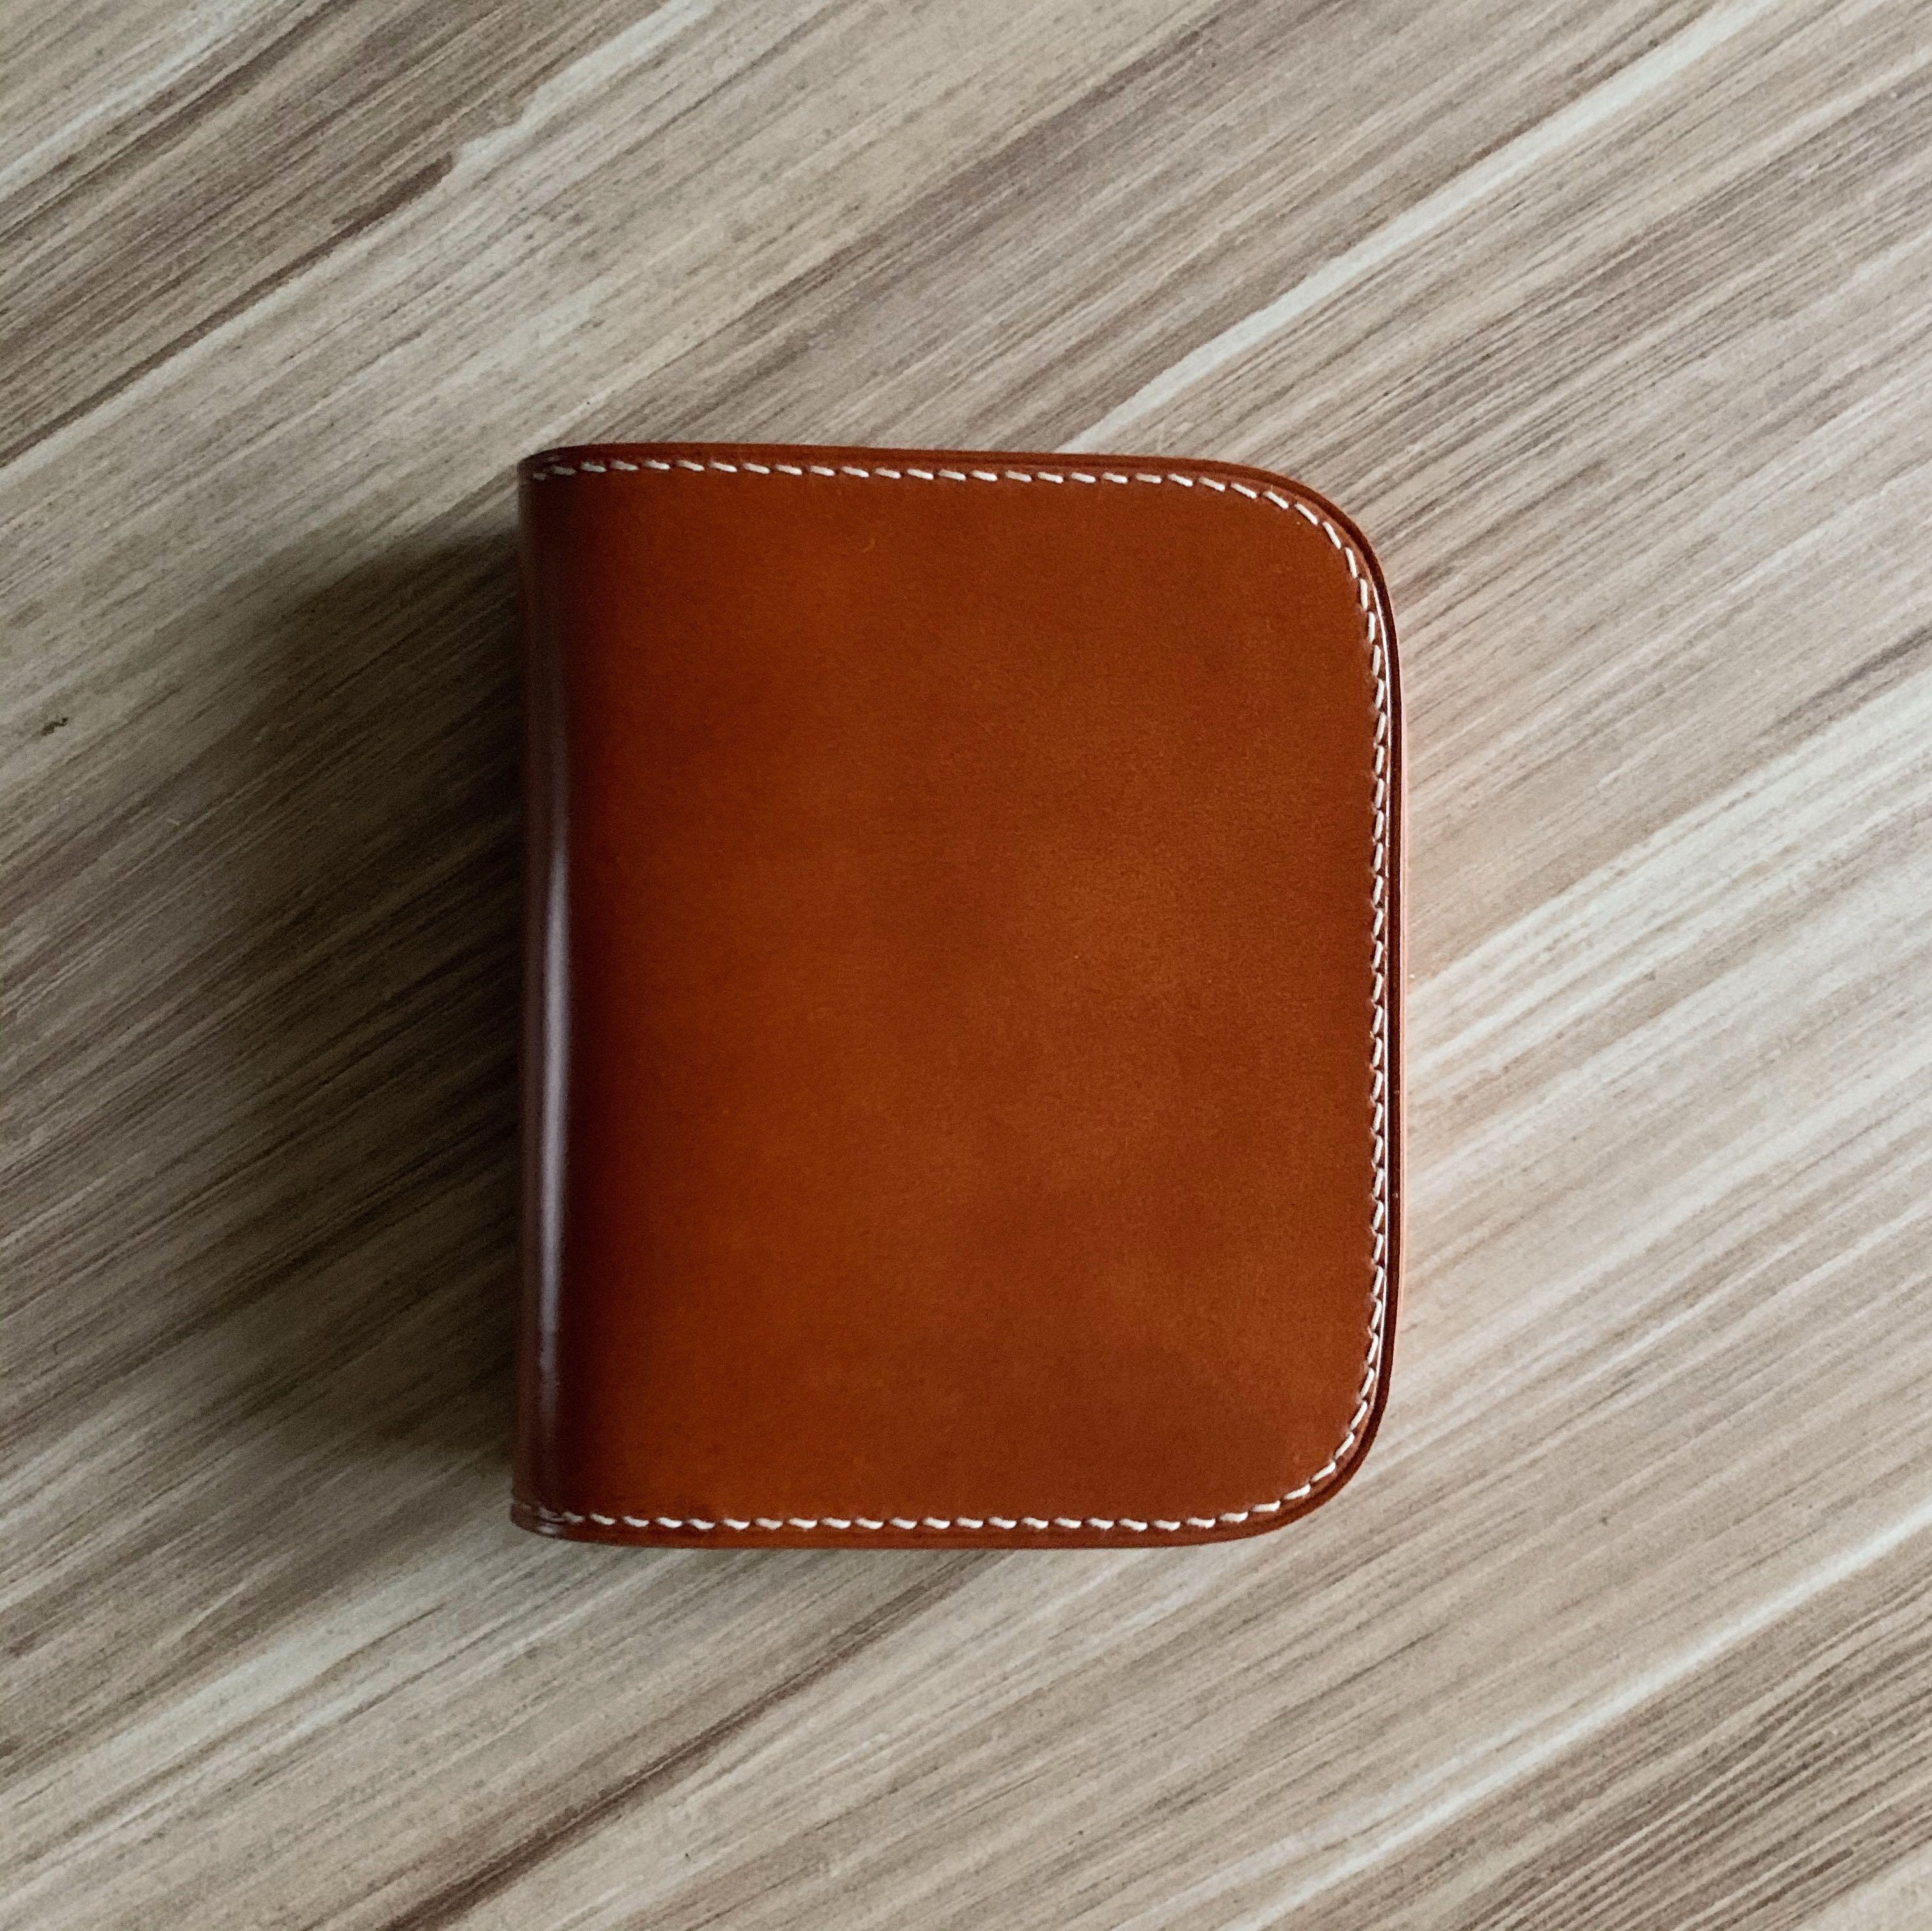 Horween shell cordovan full leather wallet